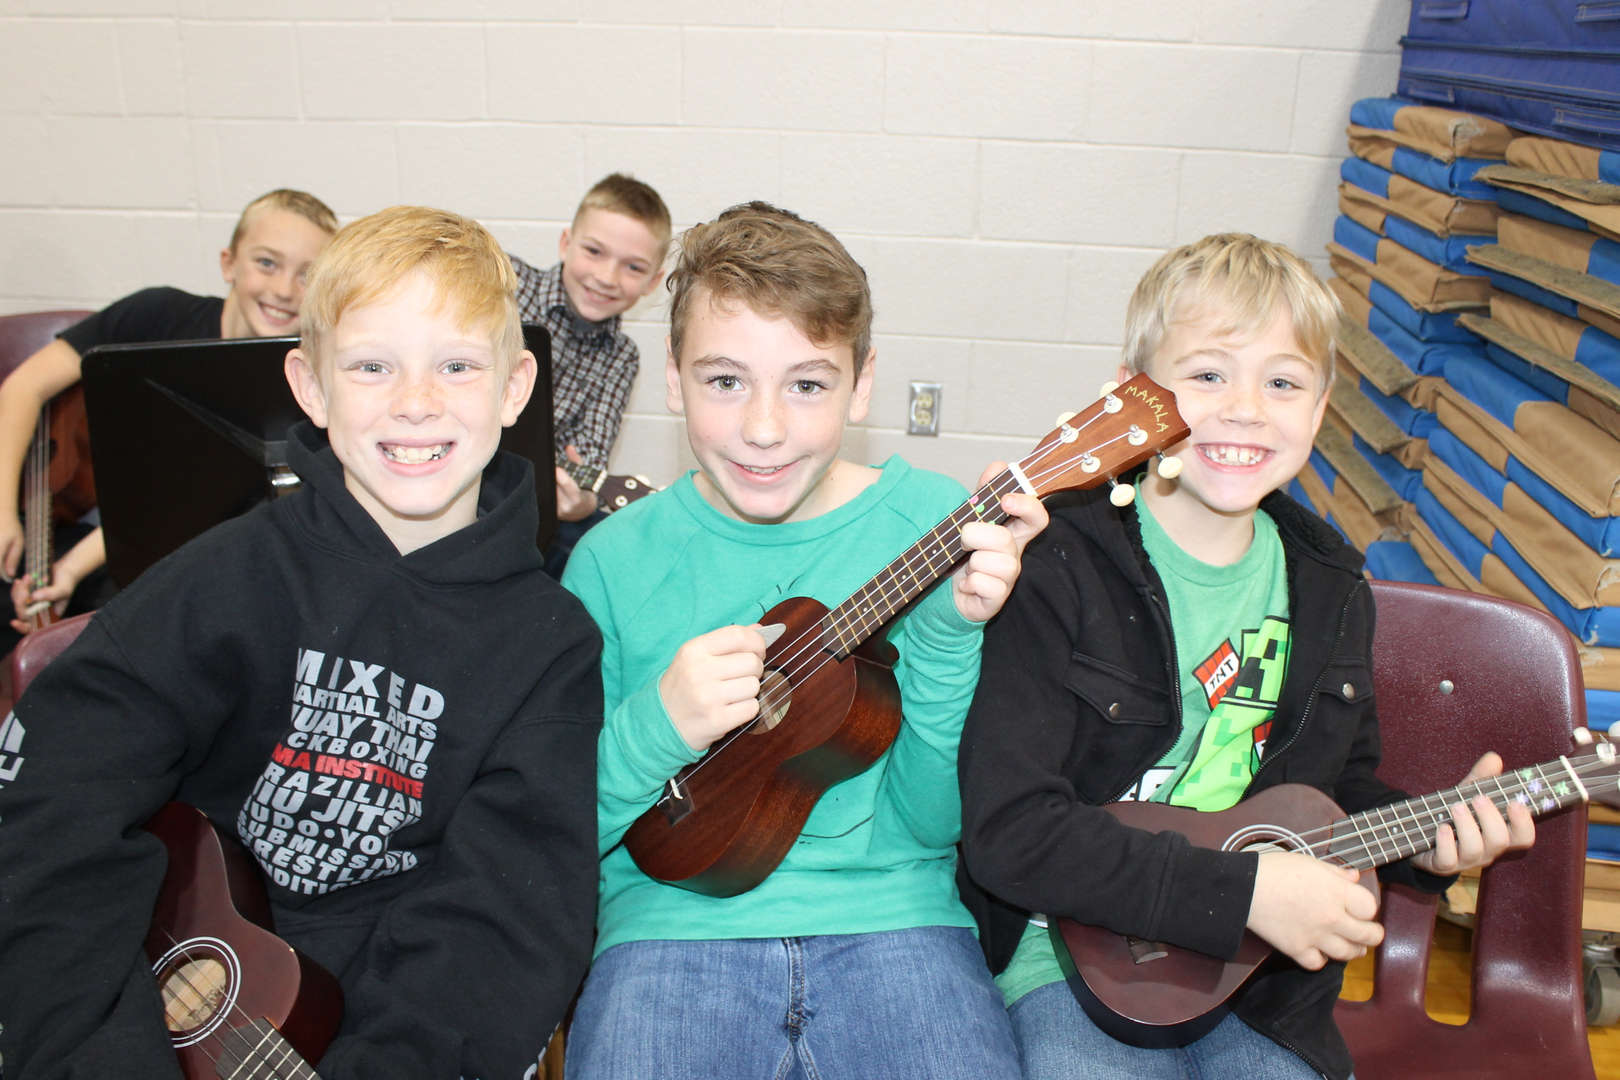 4th grade boys getting ready to perform